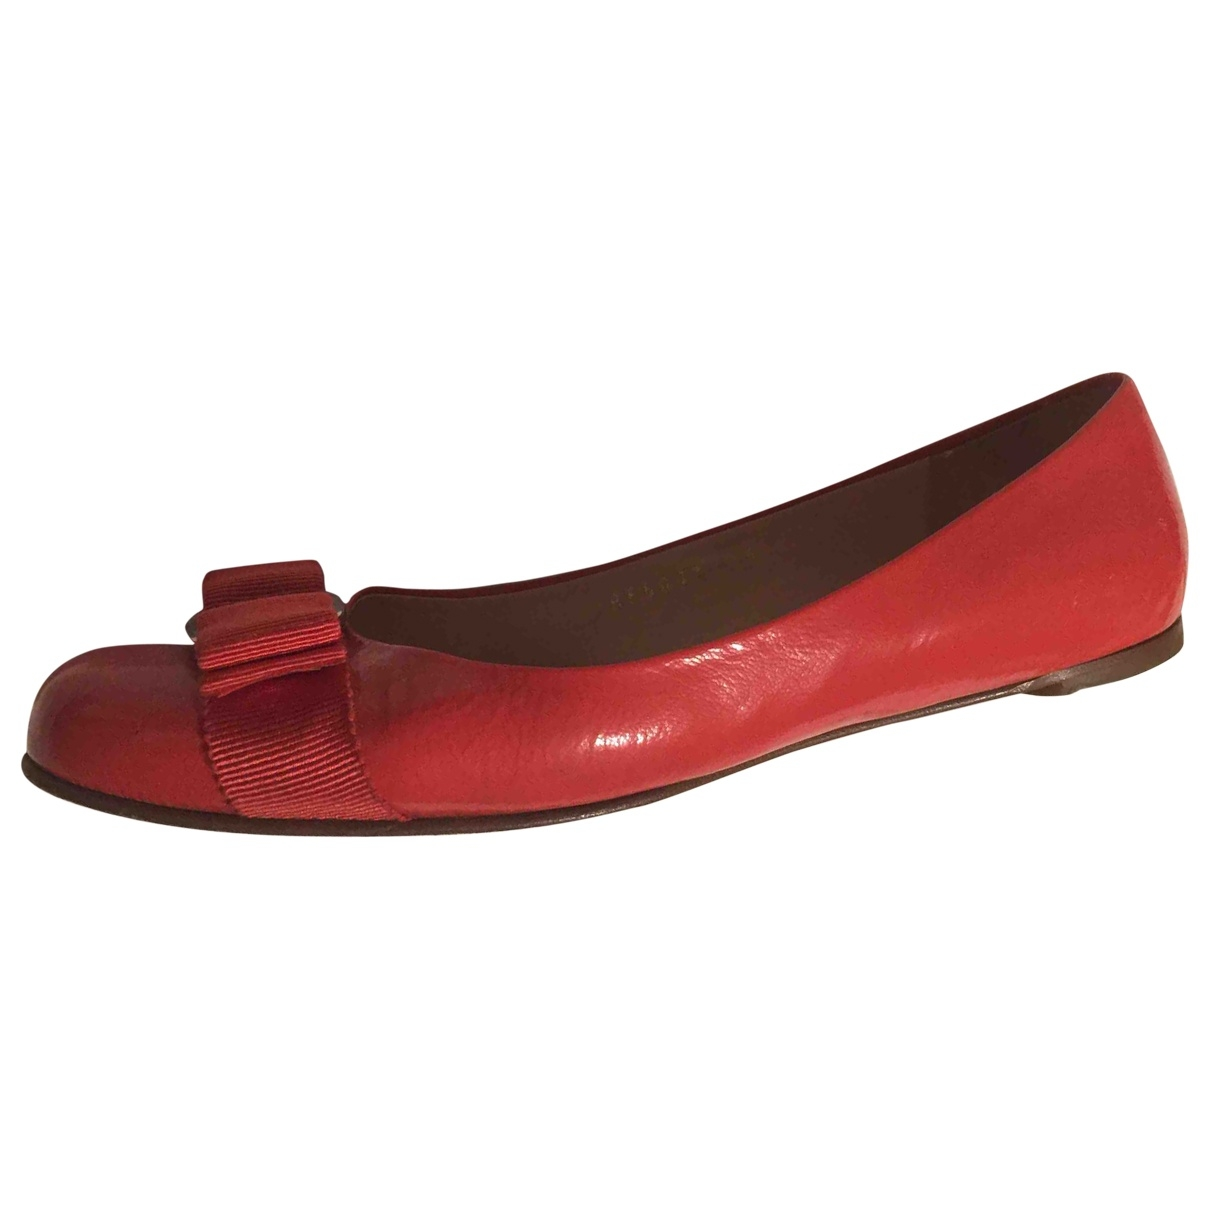 Salvatore Ferragamo \N Orange Patent leather Ballet flats for Women 7 US